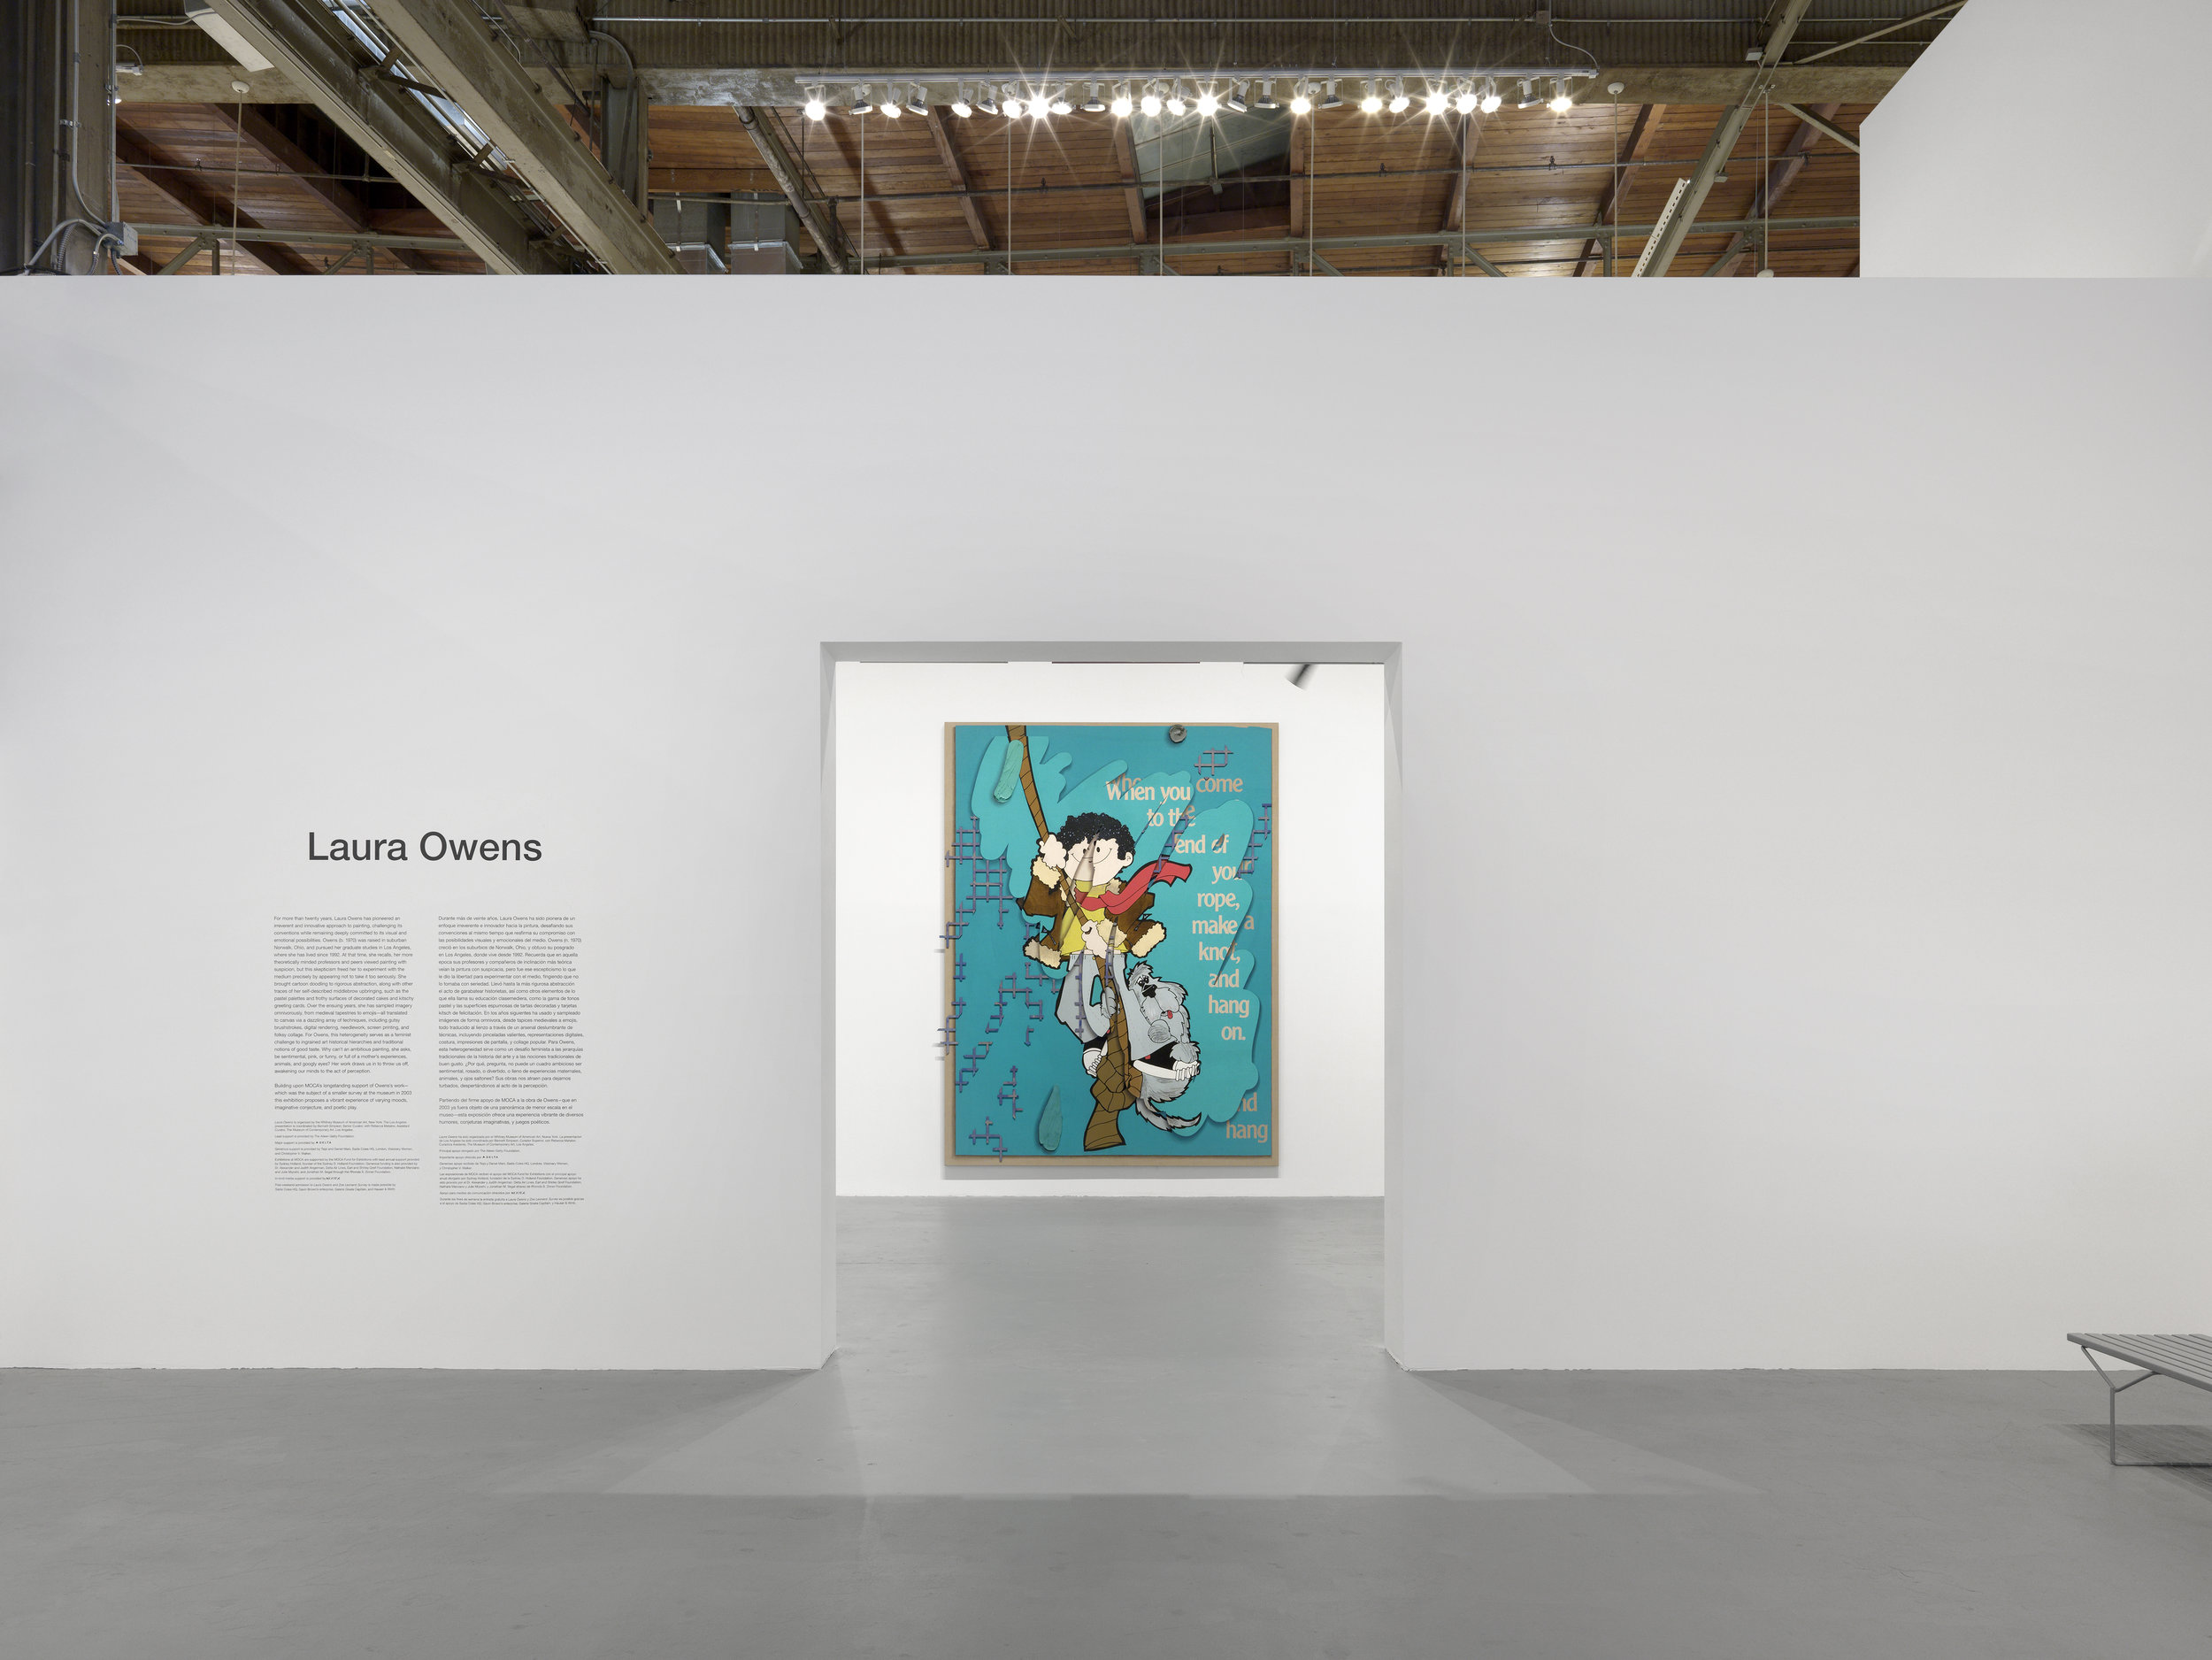 The Geffen Contemporary at MOCA - Los Angeles | Laura Owens | 2018